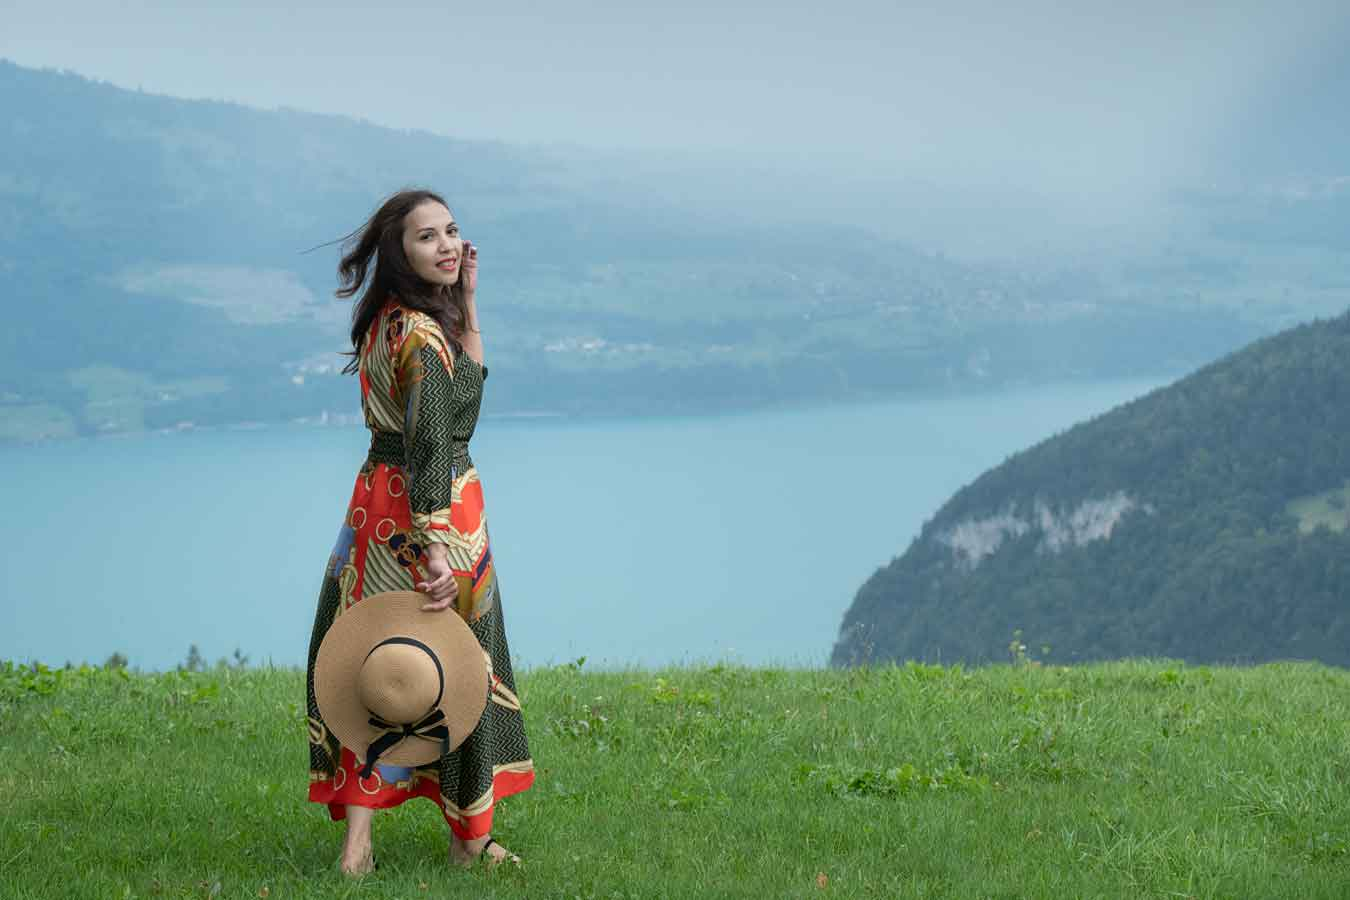 Photo Shoot near Interlaken